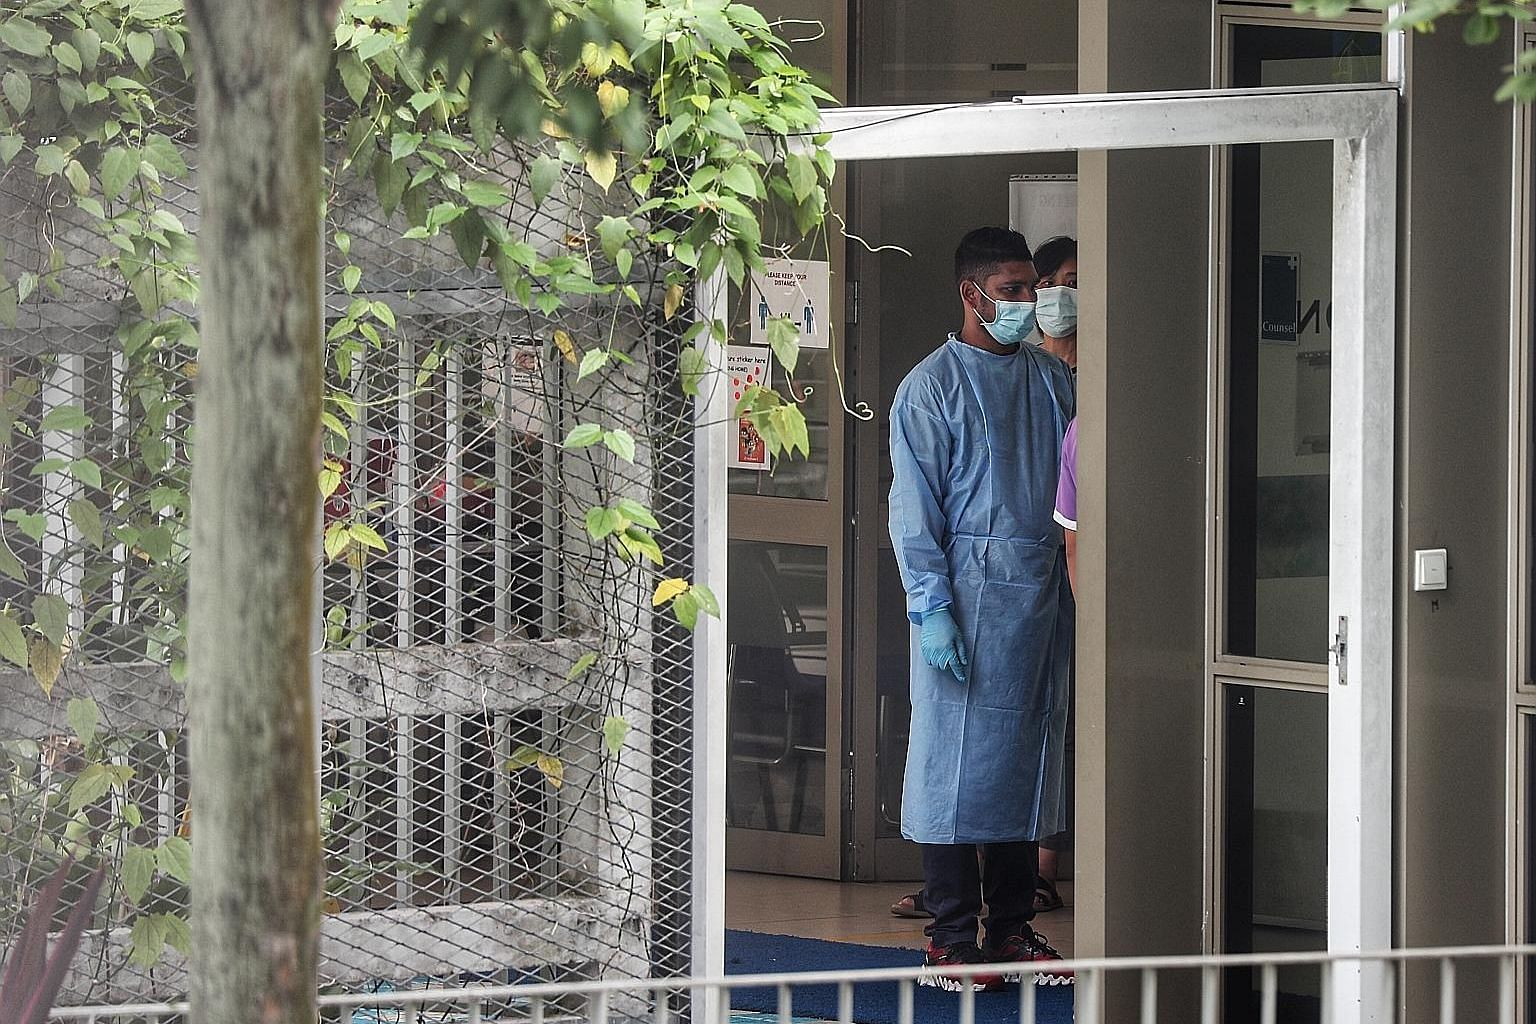 Pacific Healthcare Nursing Home, where a Covid-19 case was confirmed in April. The Ministry of Health said on Sunday that it had completed testing all nursing home employees and residents for the coronavirus. Staff of eldercare services in operation,